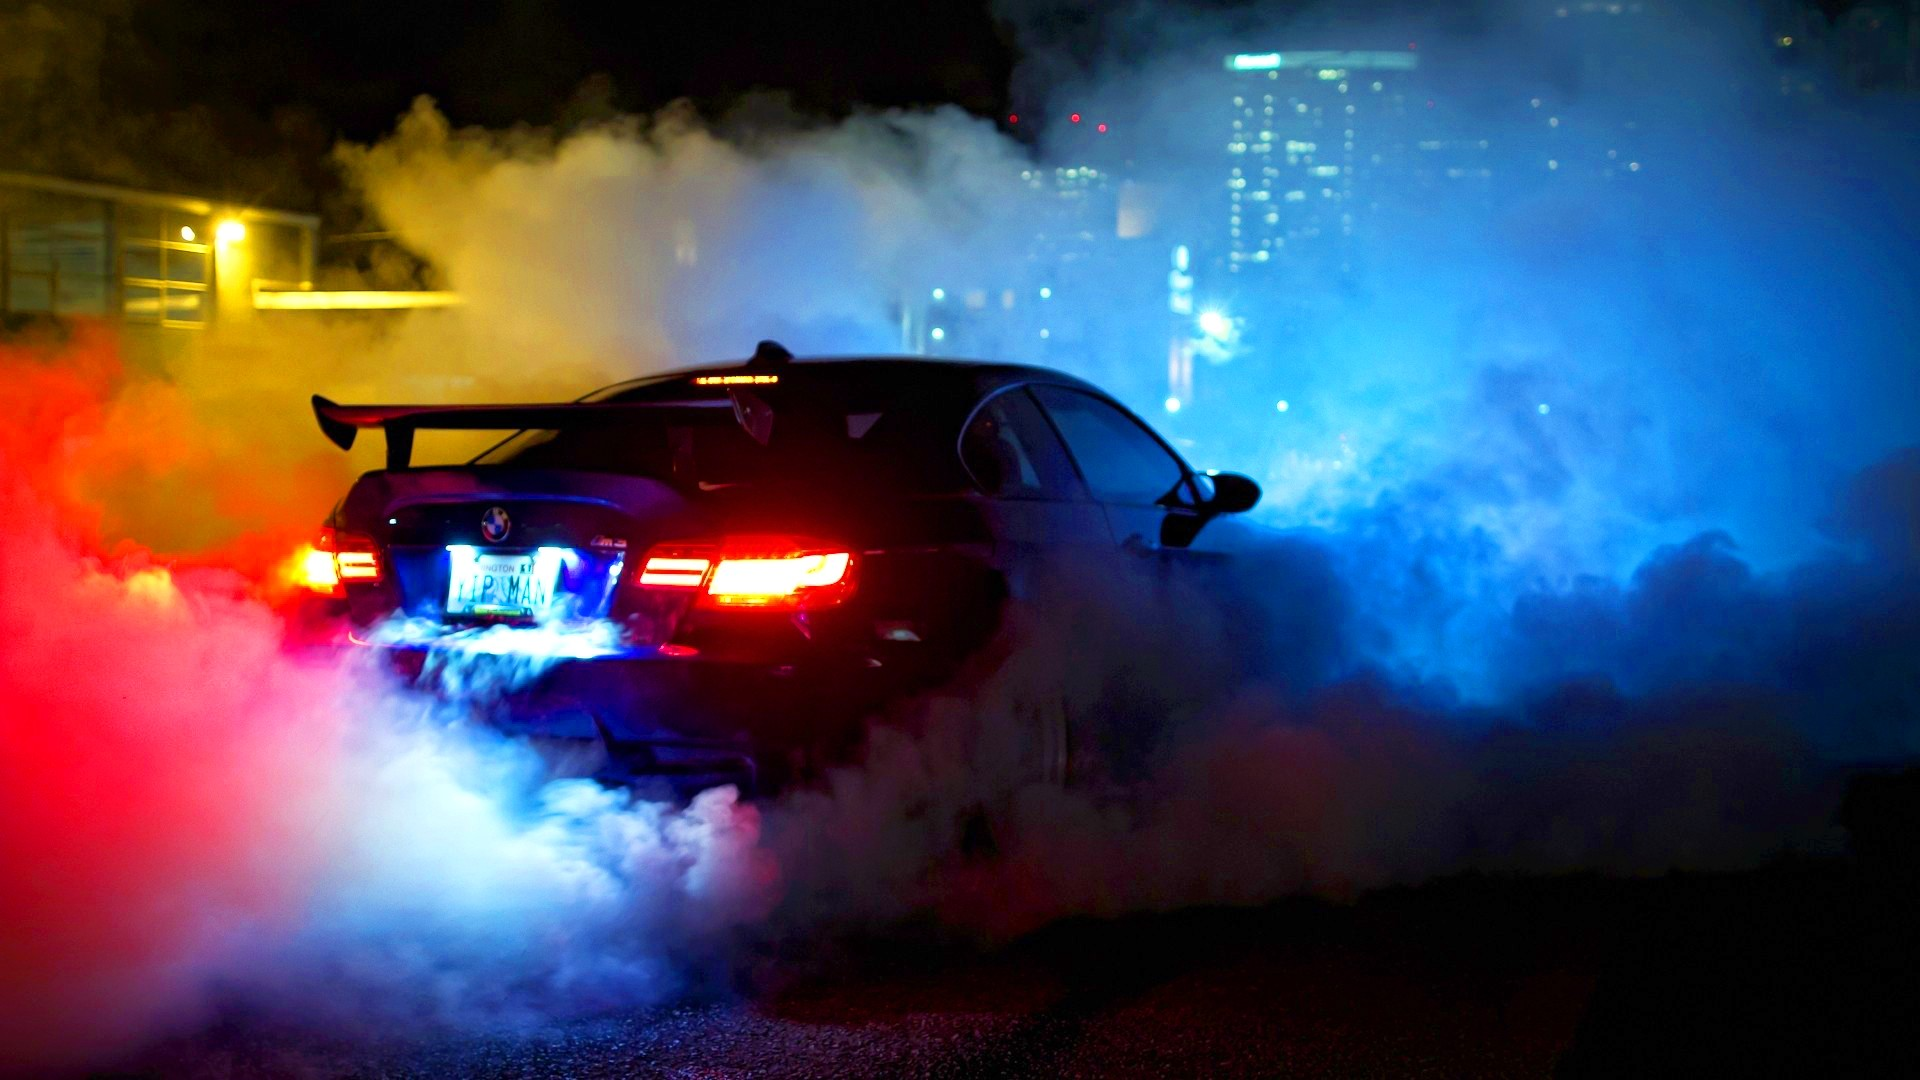 Police Cop Car Live Wallpaper Bmw Smoke Car Wallpapers Hd Desktop And Mobile Backgrounds